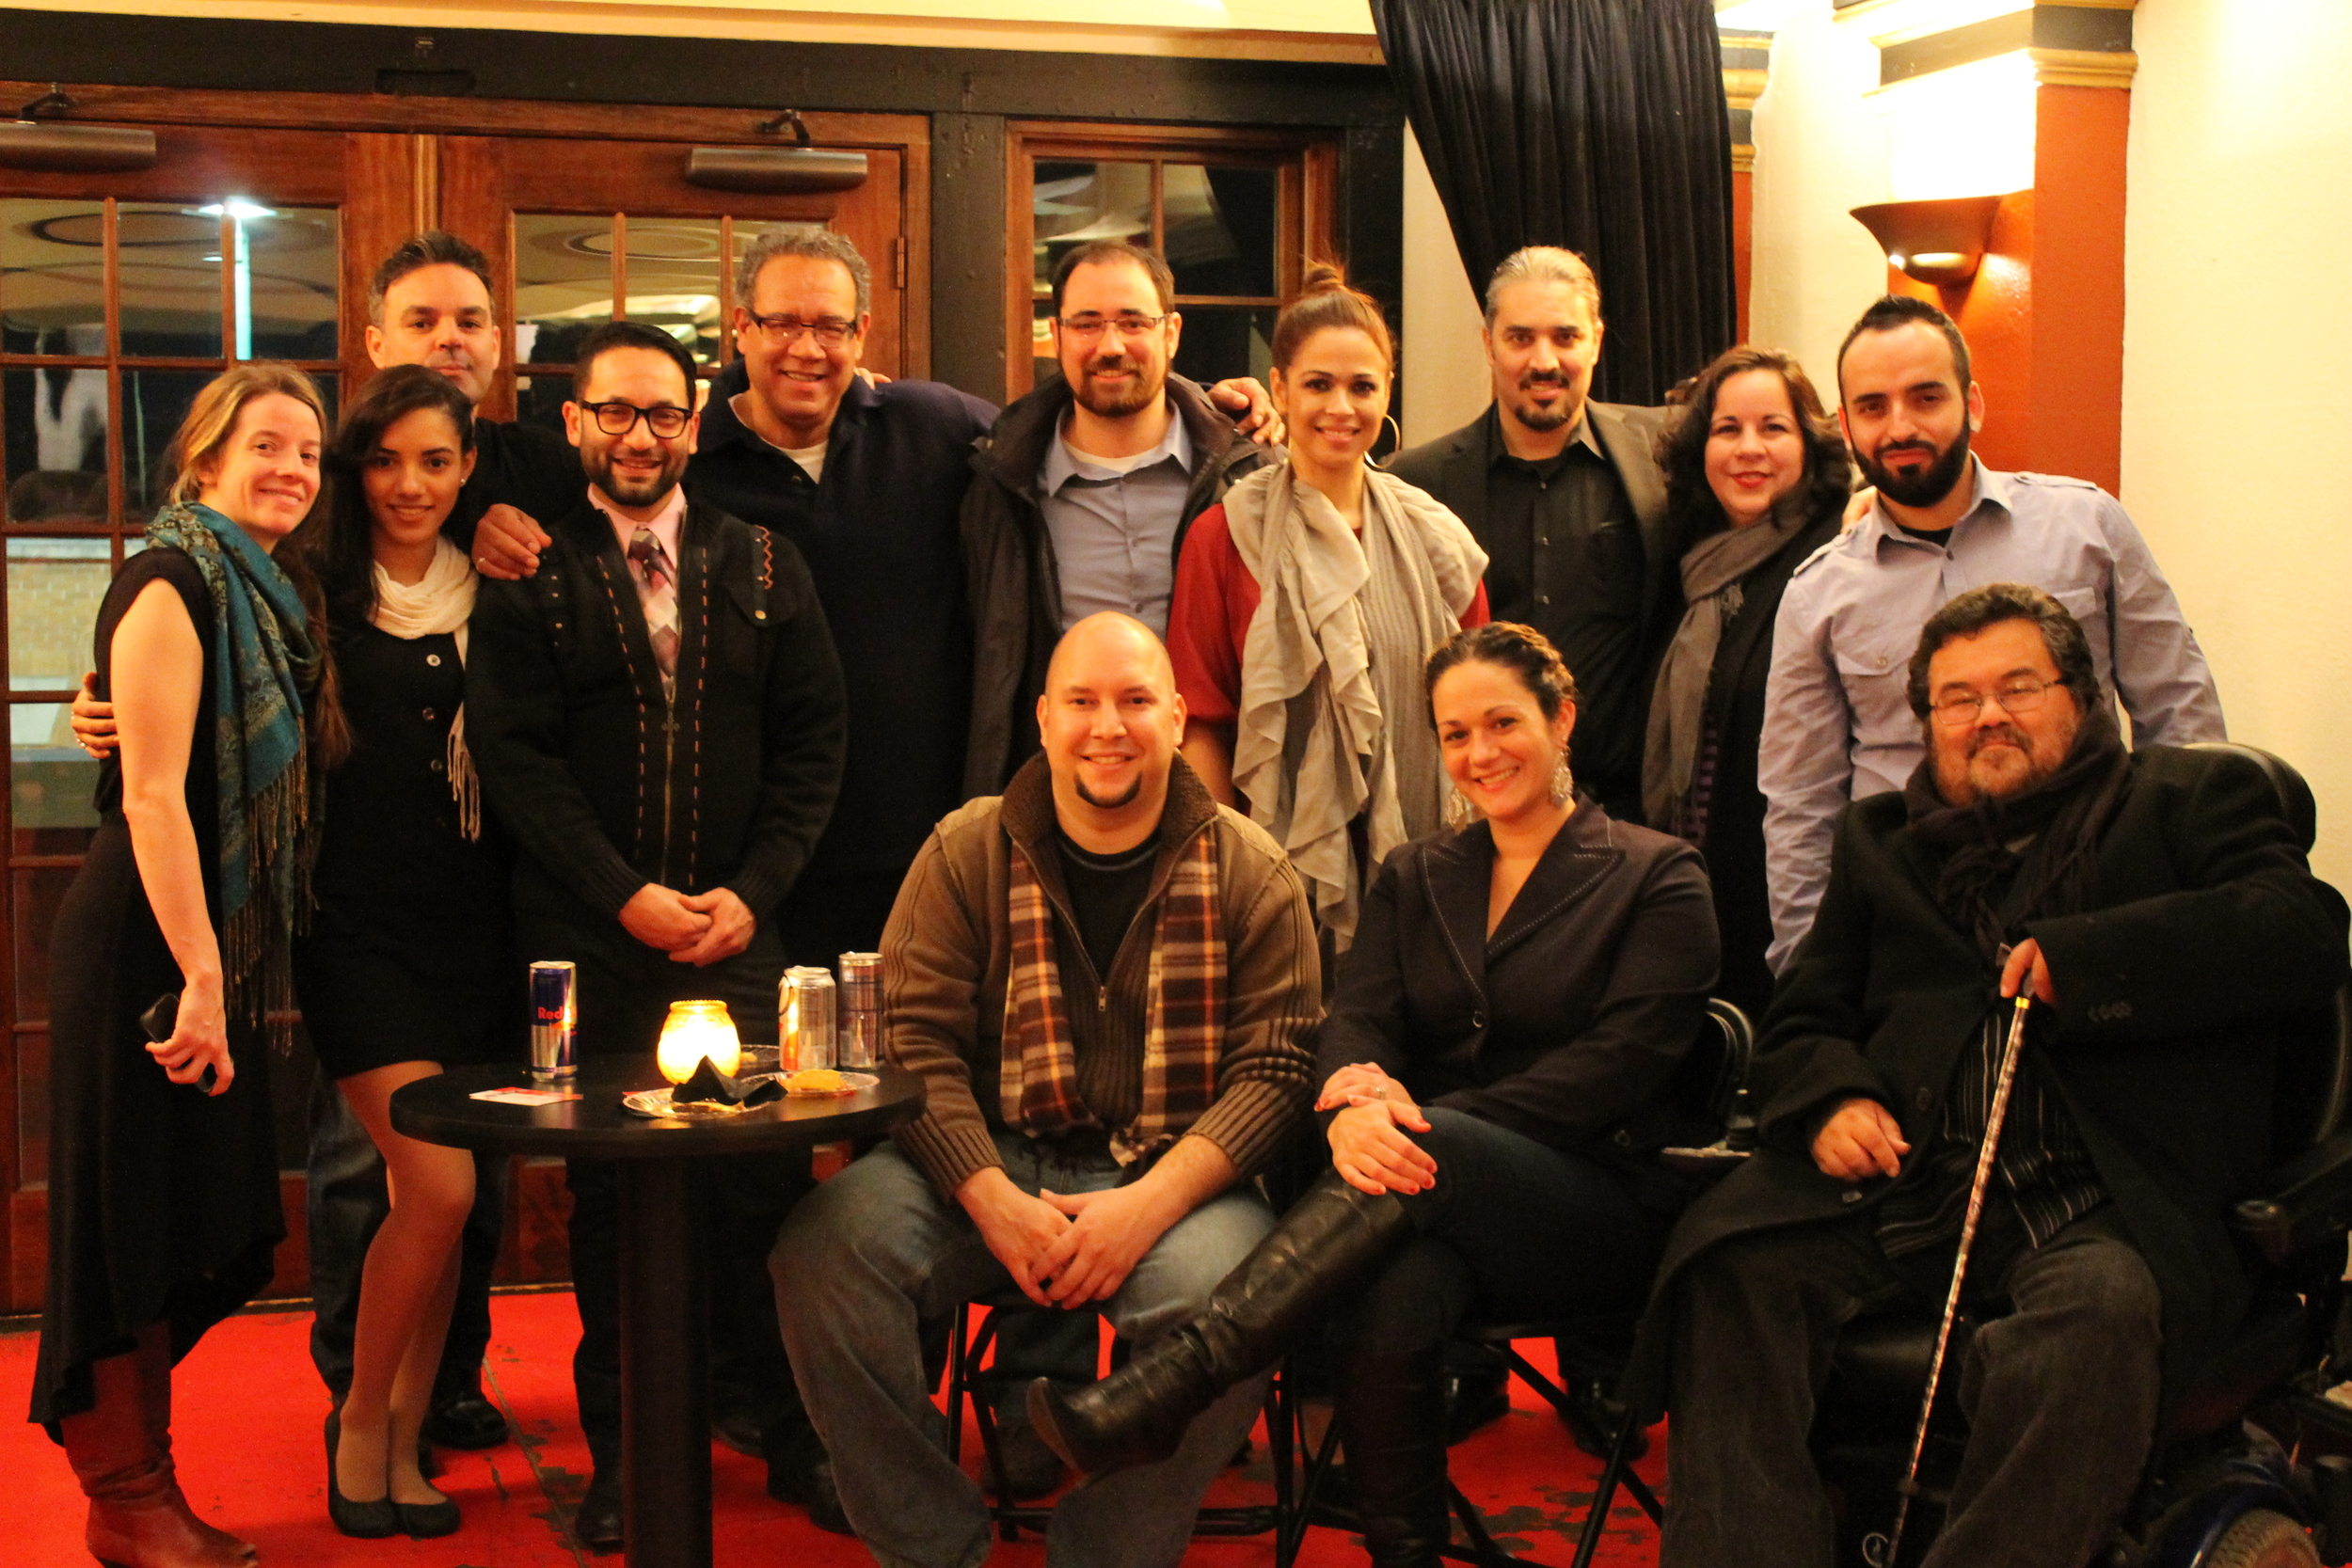 Faye with the cast of Teatro Publico de Cleveland, 2013